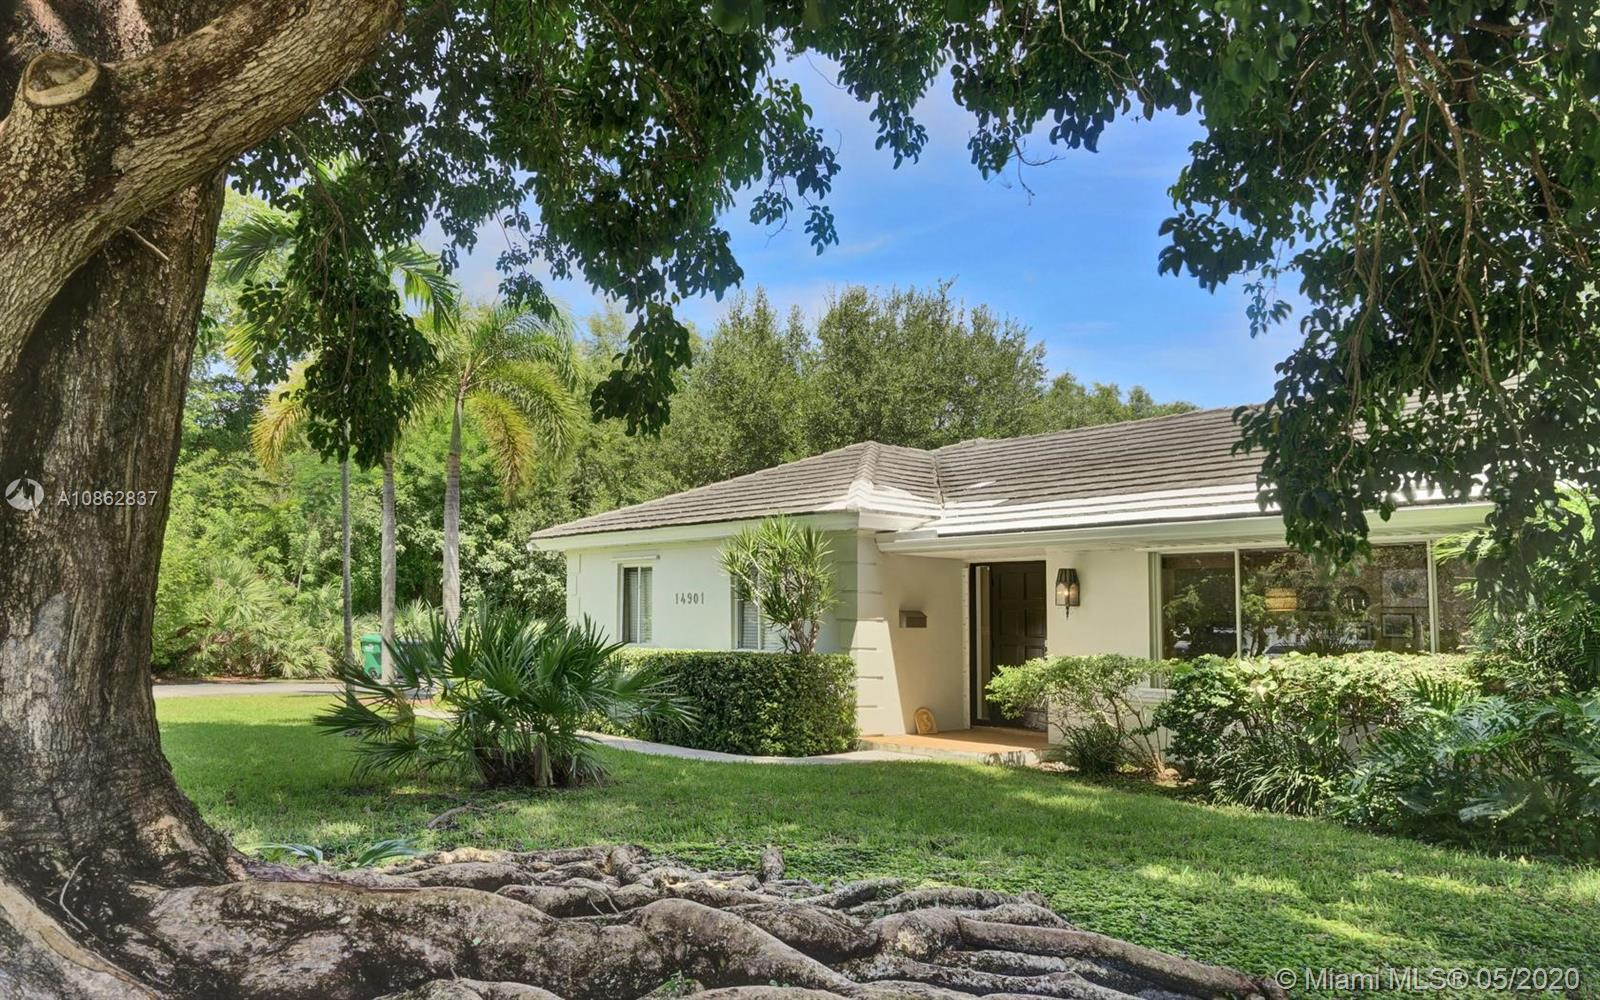 14901 SW 72 CT  For Sale A10862837, FL